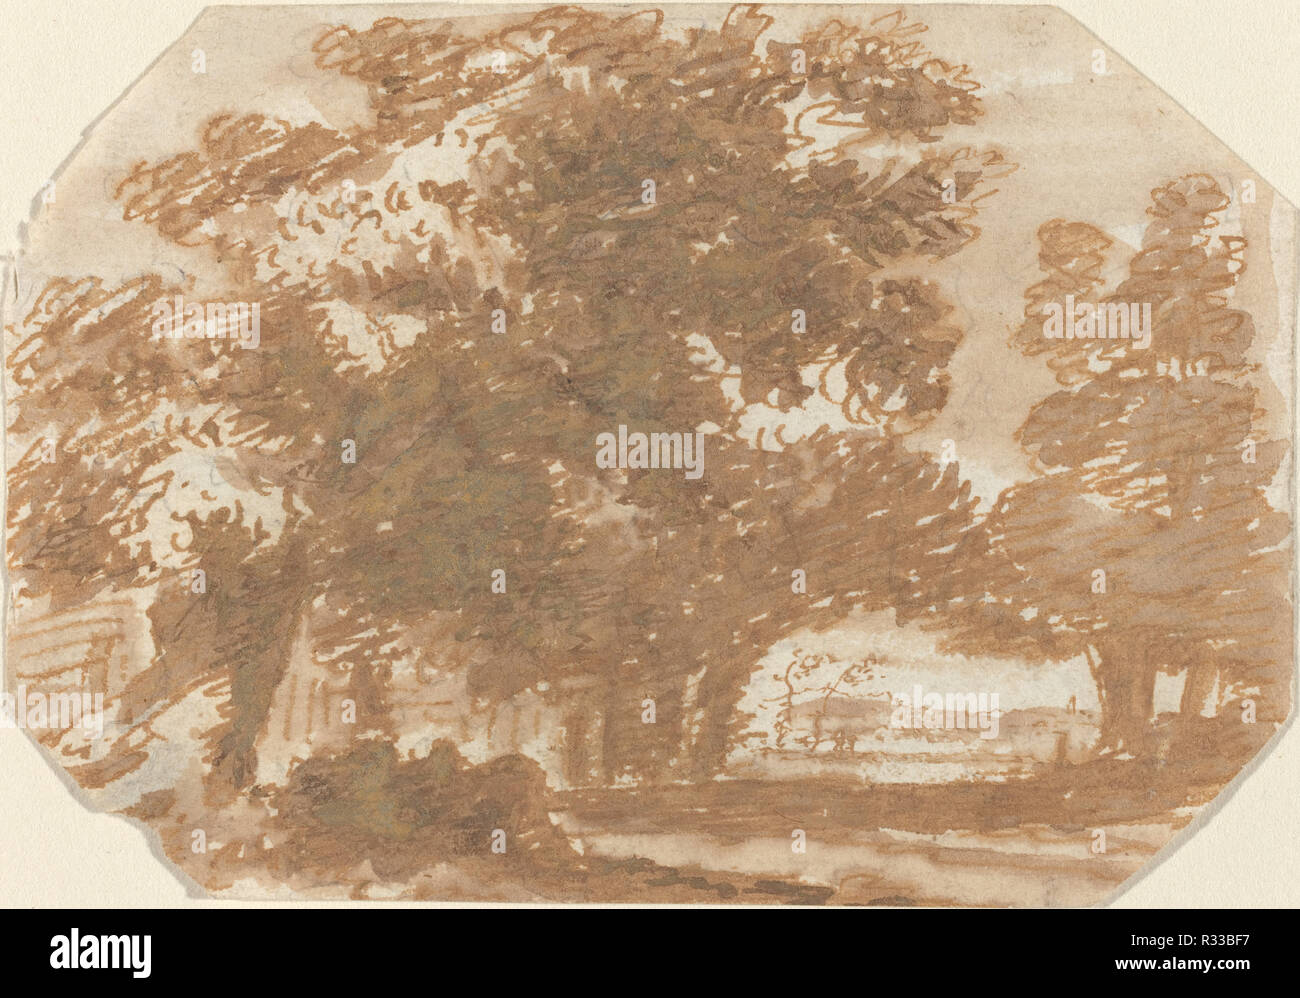 Grove of Trees. Dated: c. 1640. Dimensions: overall: 8.5 x 12.4 cm (3 3/8 x 4 7/8 in.). Medium: pen and brown ink with gray wash on laid paper. Museum: National Gallery of Art, Washington DC. Author: Claude Lorrain. - Stock Image